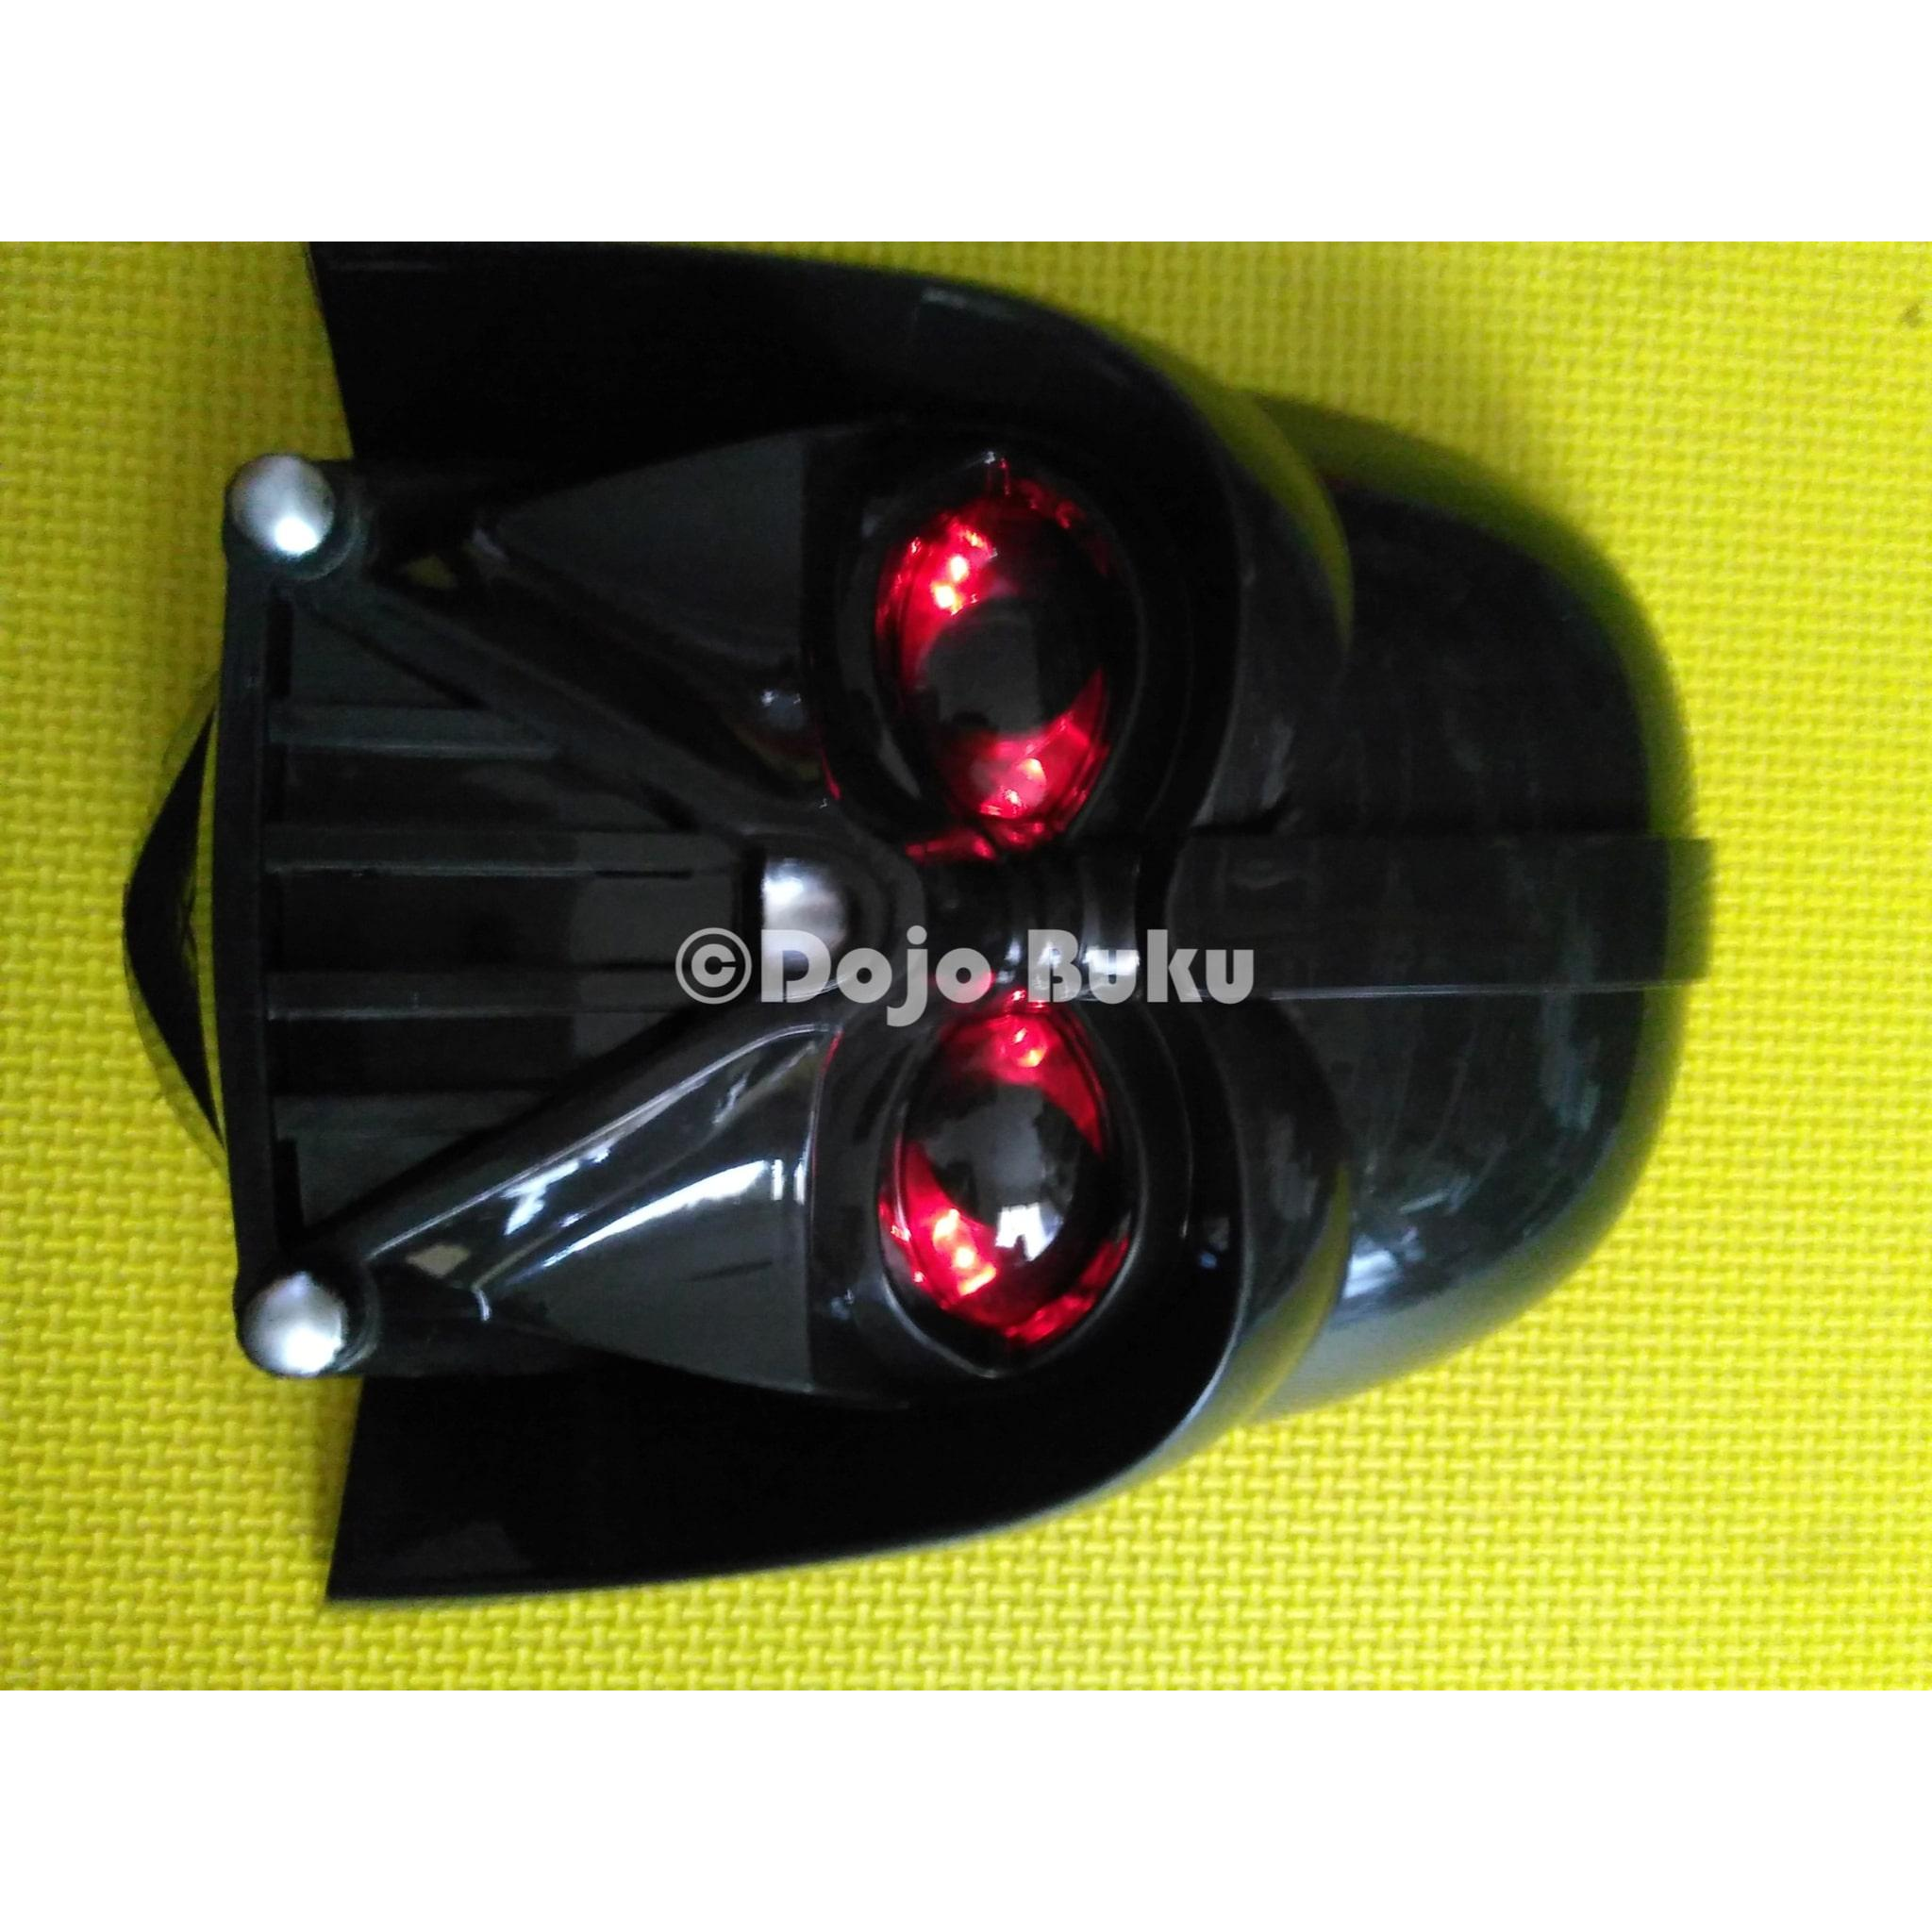 Topeng Darth Vader Star Wars Menyala Bunyi Elevenia Tcash Puasa Headlamp Zoom